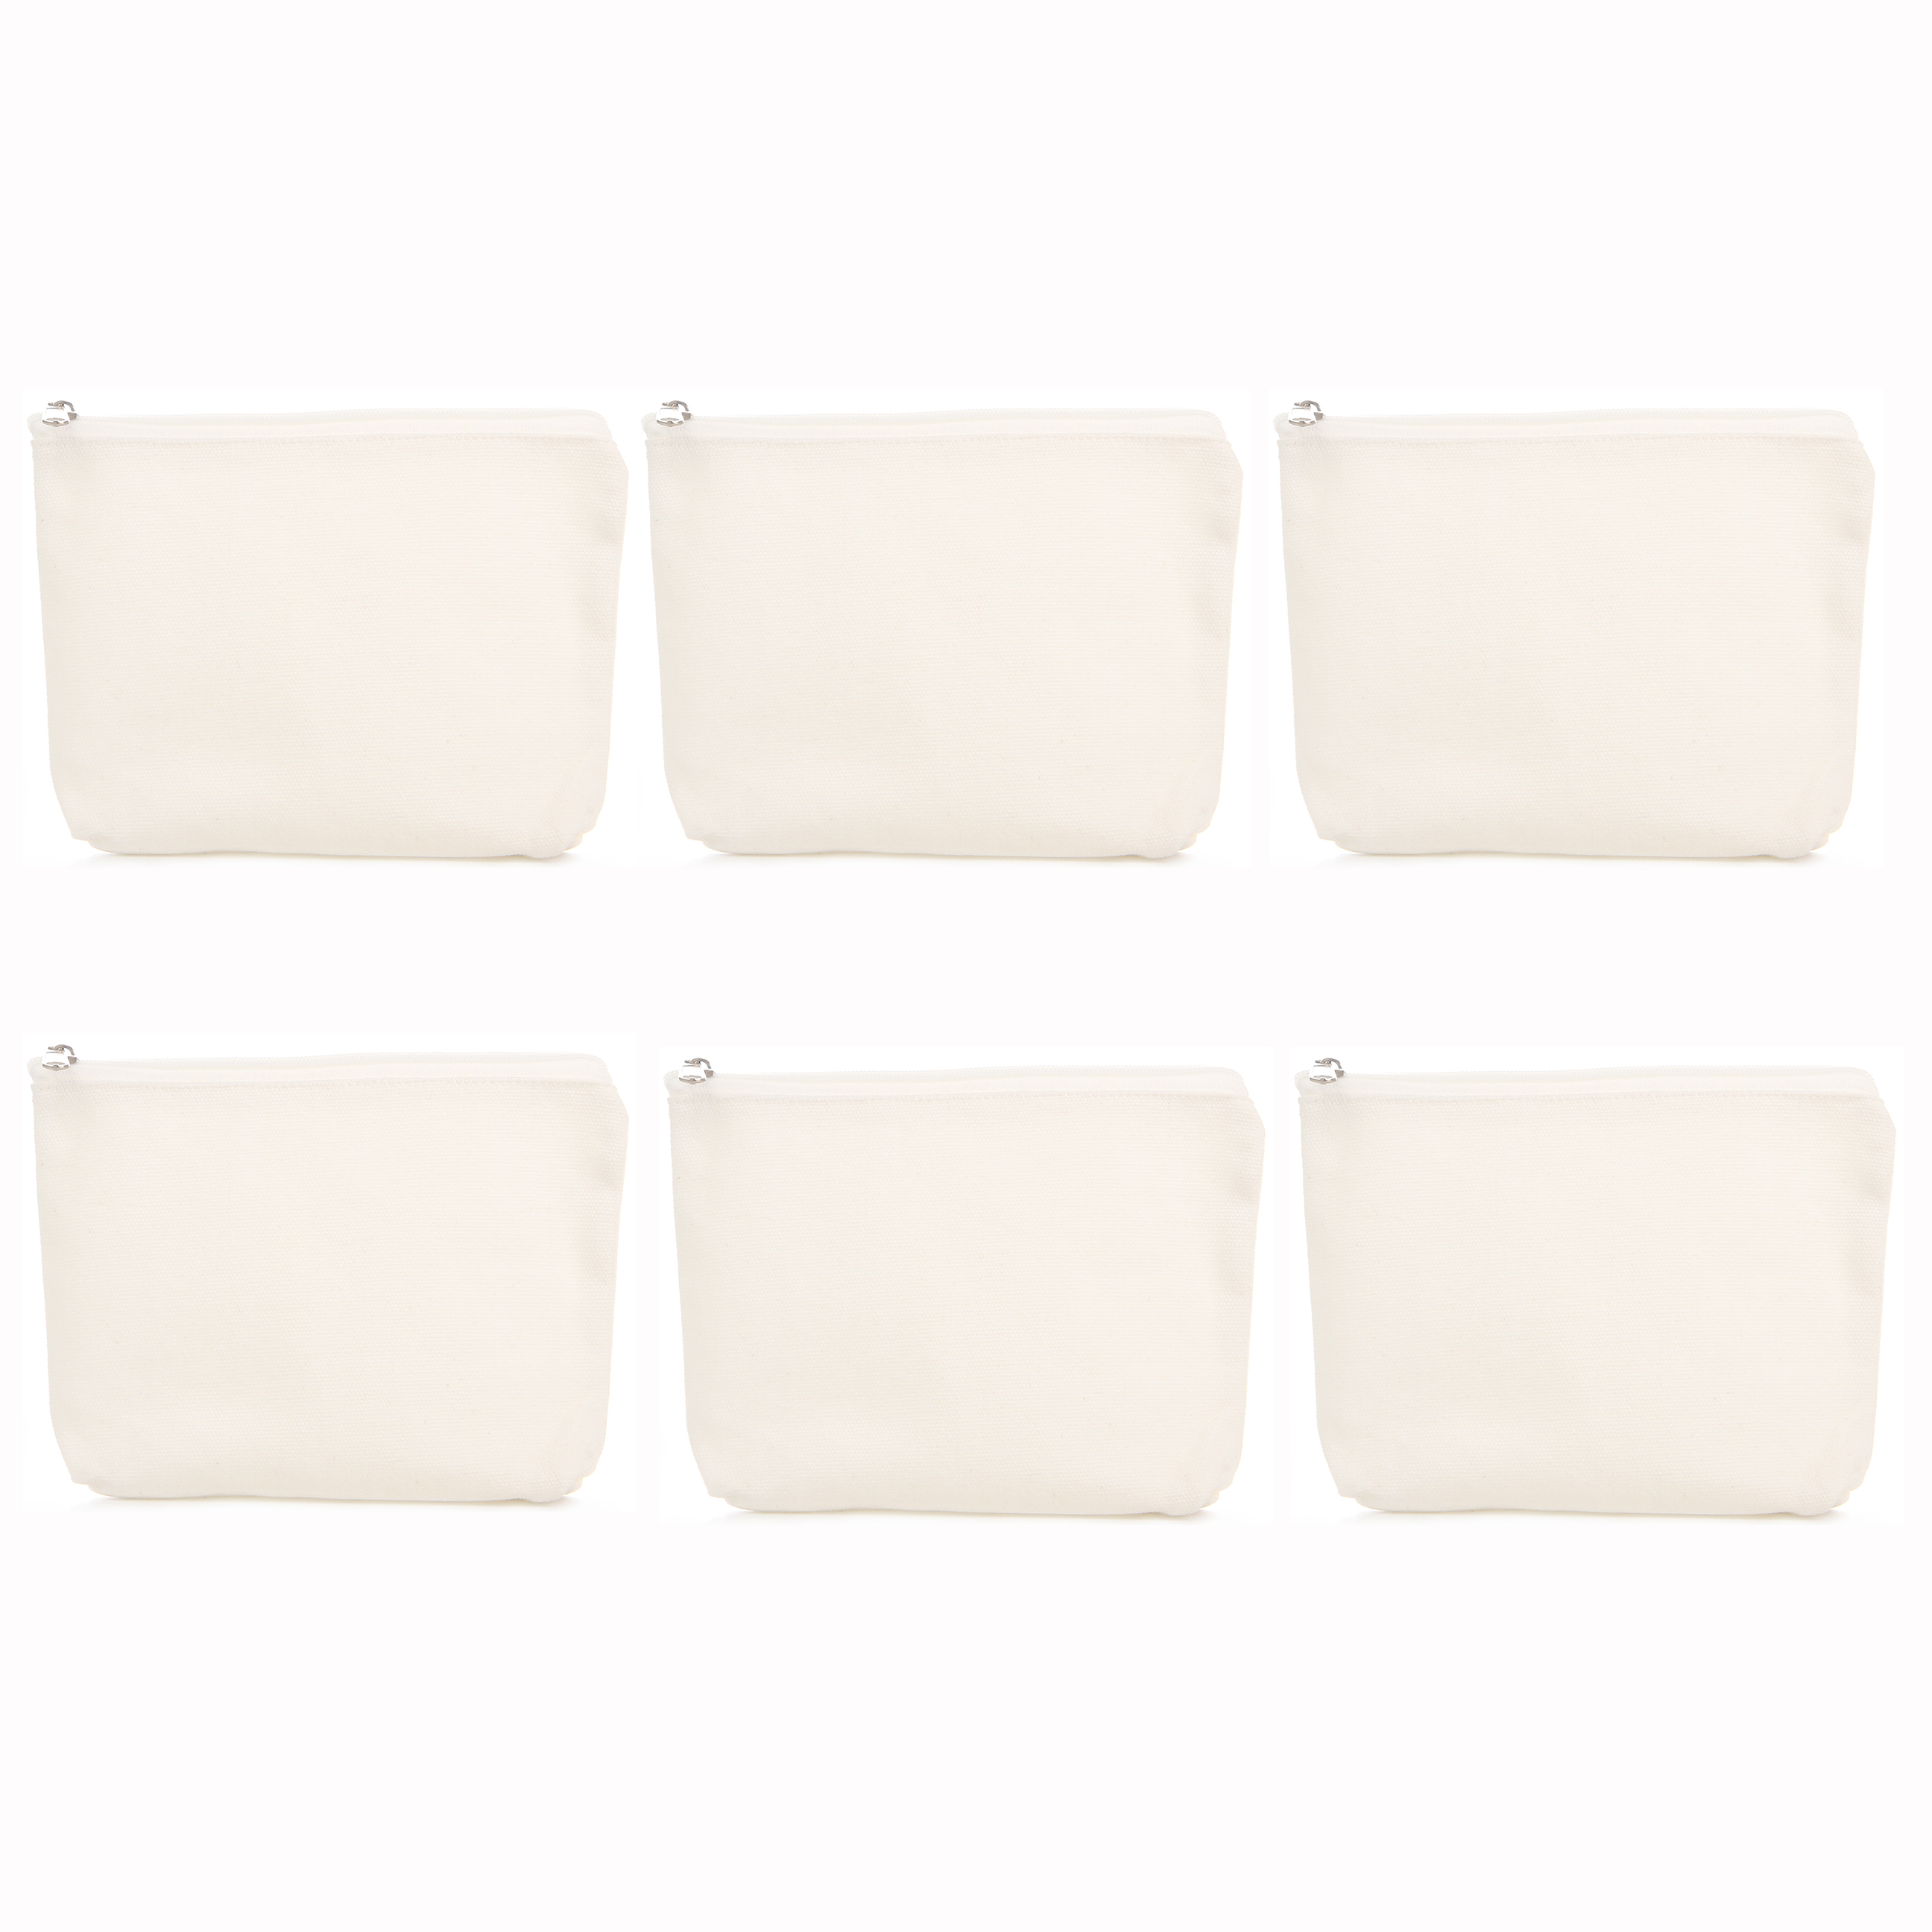 Bright Creations Canvas Makeup Bags With Zipper (6 Pack) 6 X 5 Inches, Off White DIY Cosmatic Bag